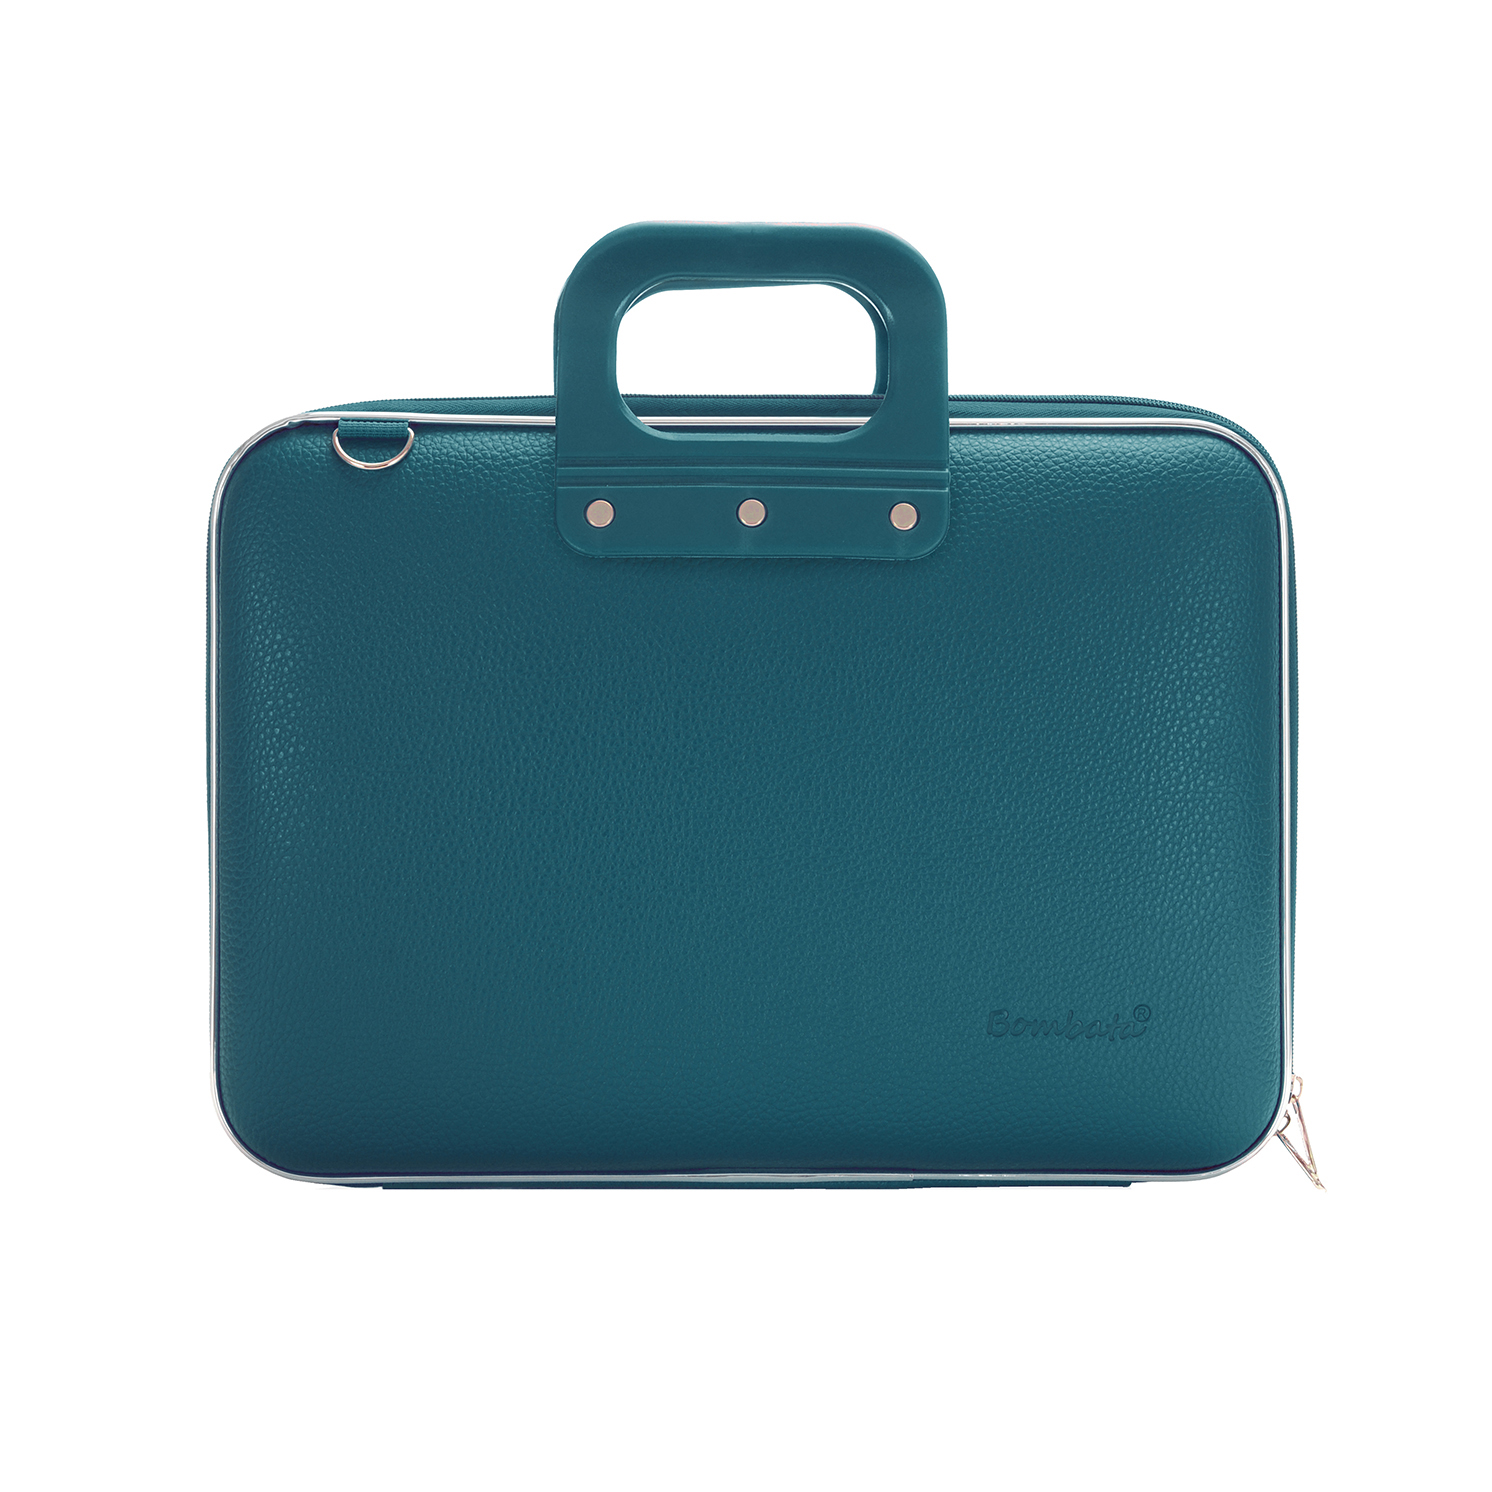 Bombata – Teal Blue Medio Classic 13″ Laptop Case/Bag with Shoulder Strap